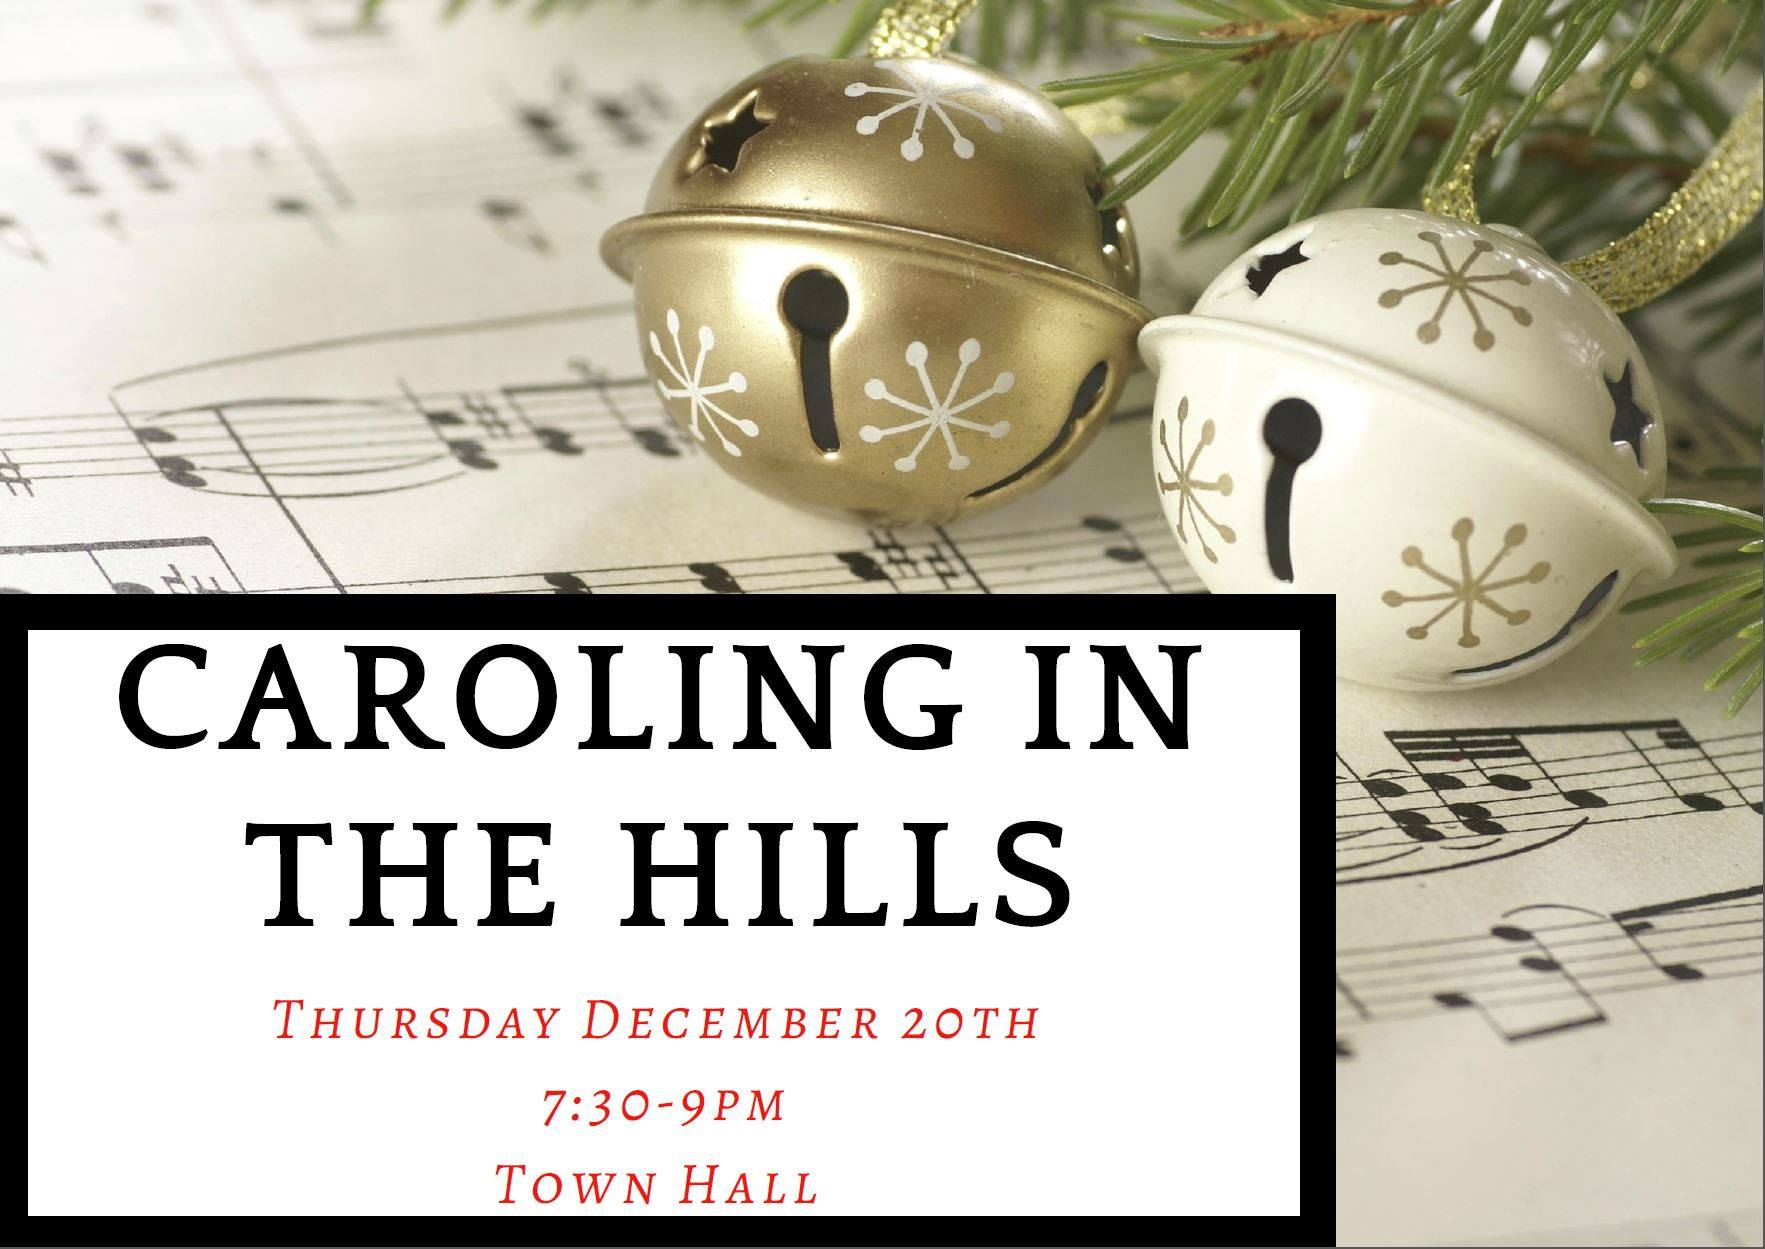 caroling in the hills